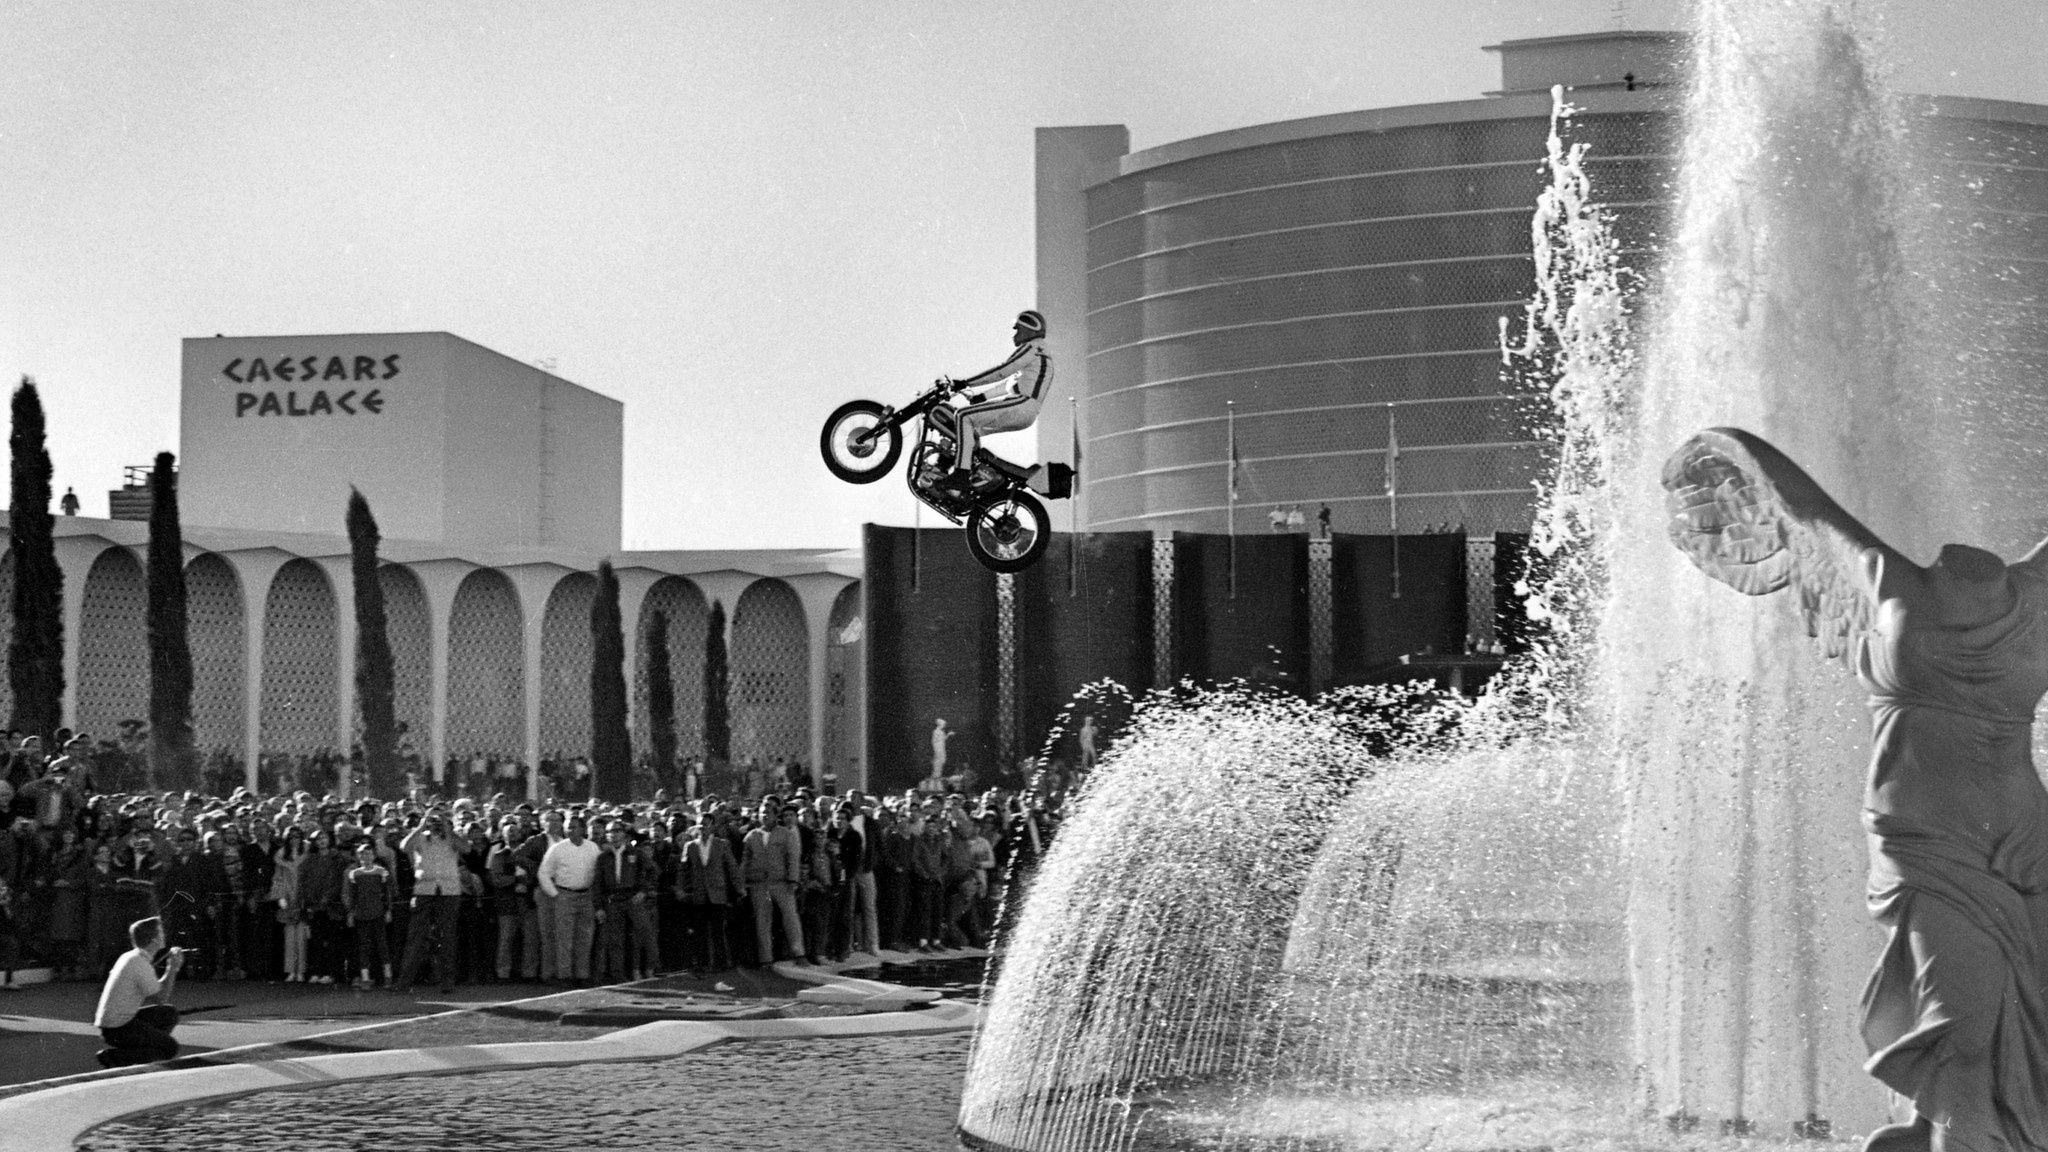 Evel Knievel jumped the fountains outside Caesars Palace on Dec. 31, 1967, but crashed as he returned to the ground.